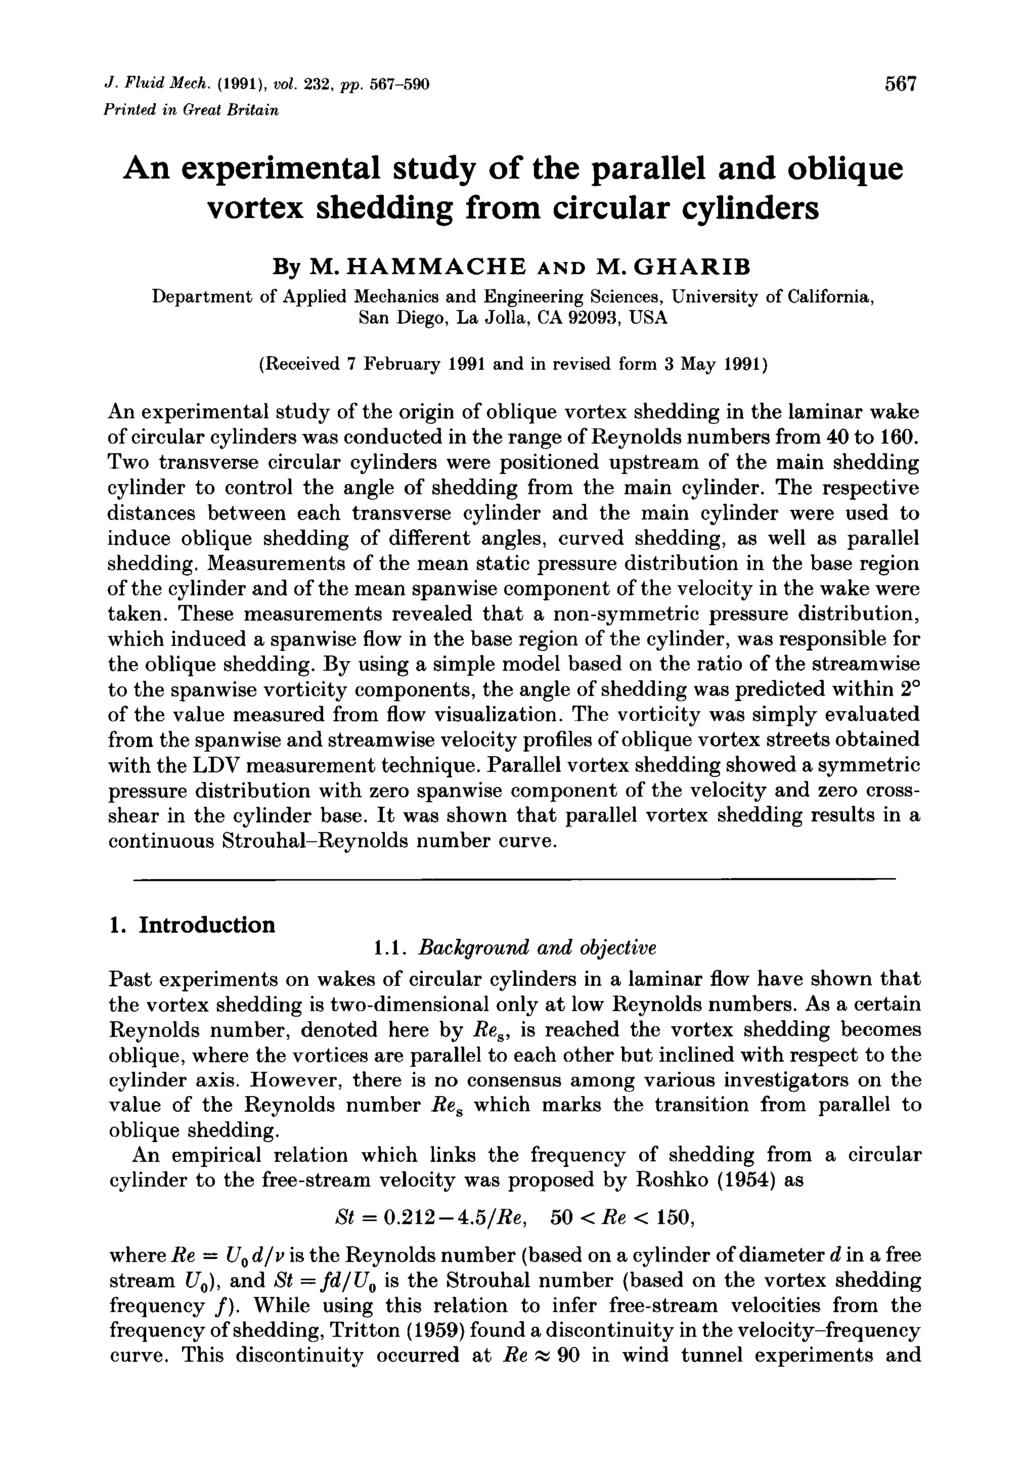 J. Fluid Mech. (1991), vol. 232, pp. 567-590 Printed in Great Britain 567 An experimental study of the parallel and oblique vortex shedding from circular cylinders By M. HAMMACHE AND M.